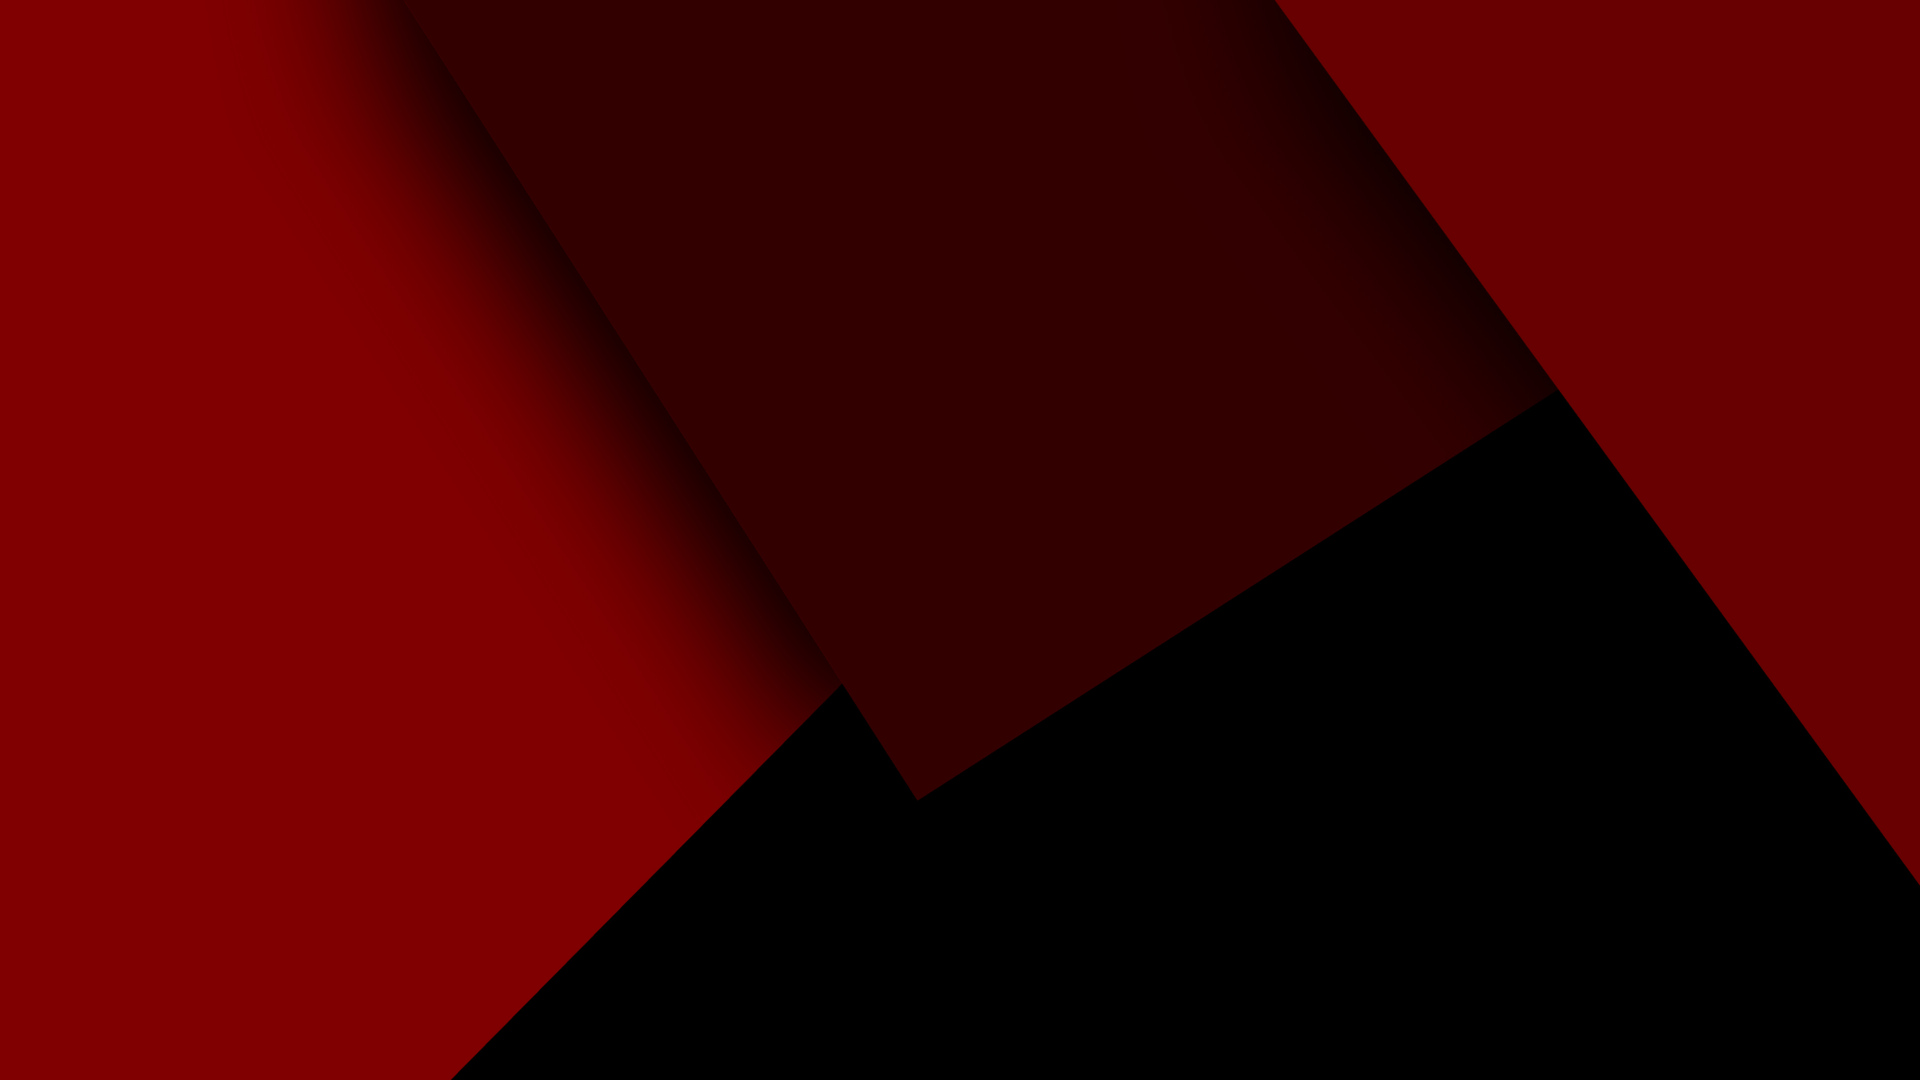 1920x1080 Dark Red Black Abstract 4k Laptop Full Hd 1080p Hd 4k Wallpapers Images Backgrounds Photos And Pictures